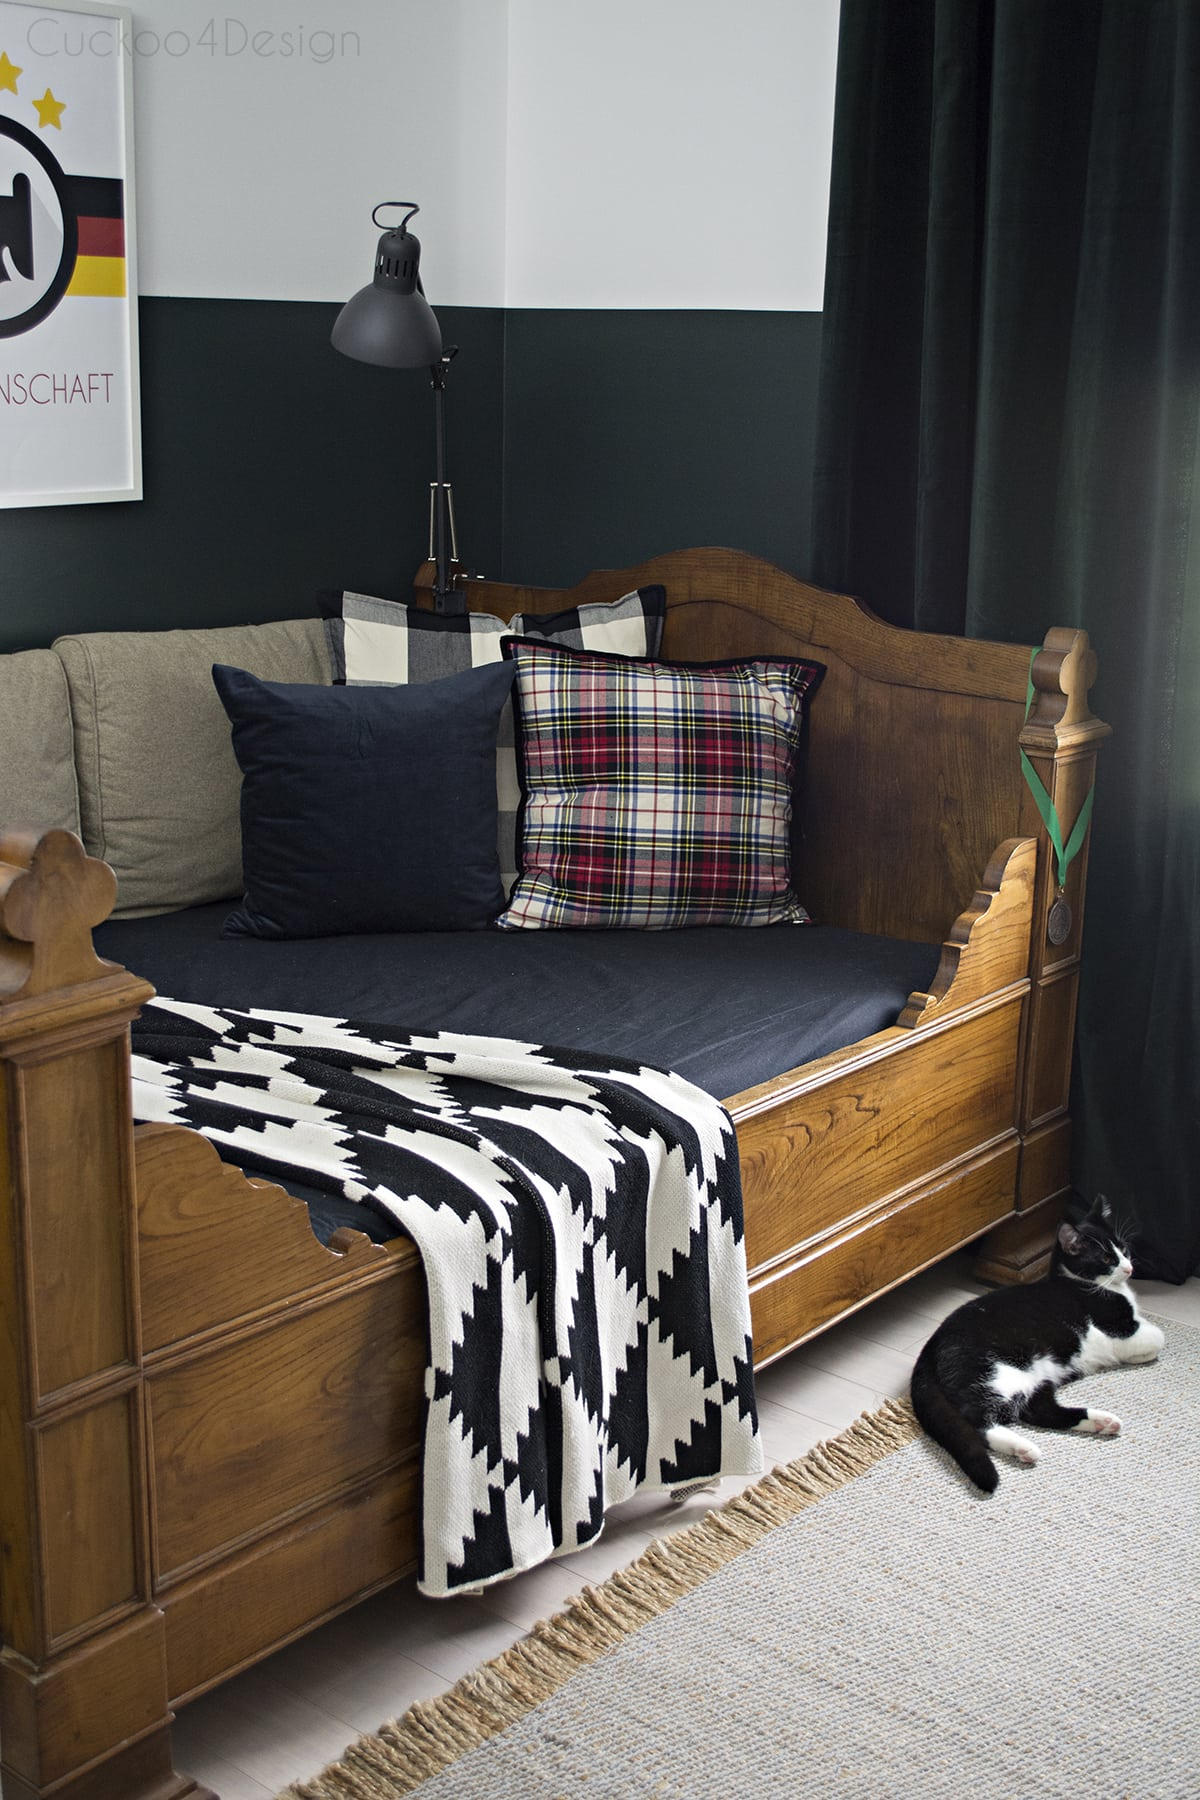 butterscotch leather butterfly chair in sophisticated boys bedroom with dark green walls, mixed plaids and soccer memorabilia